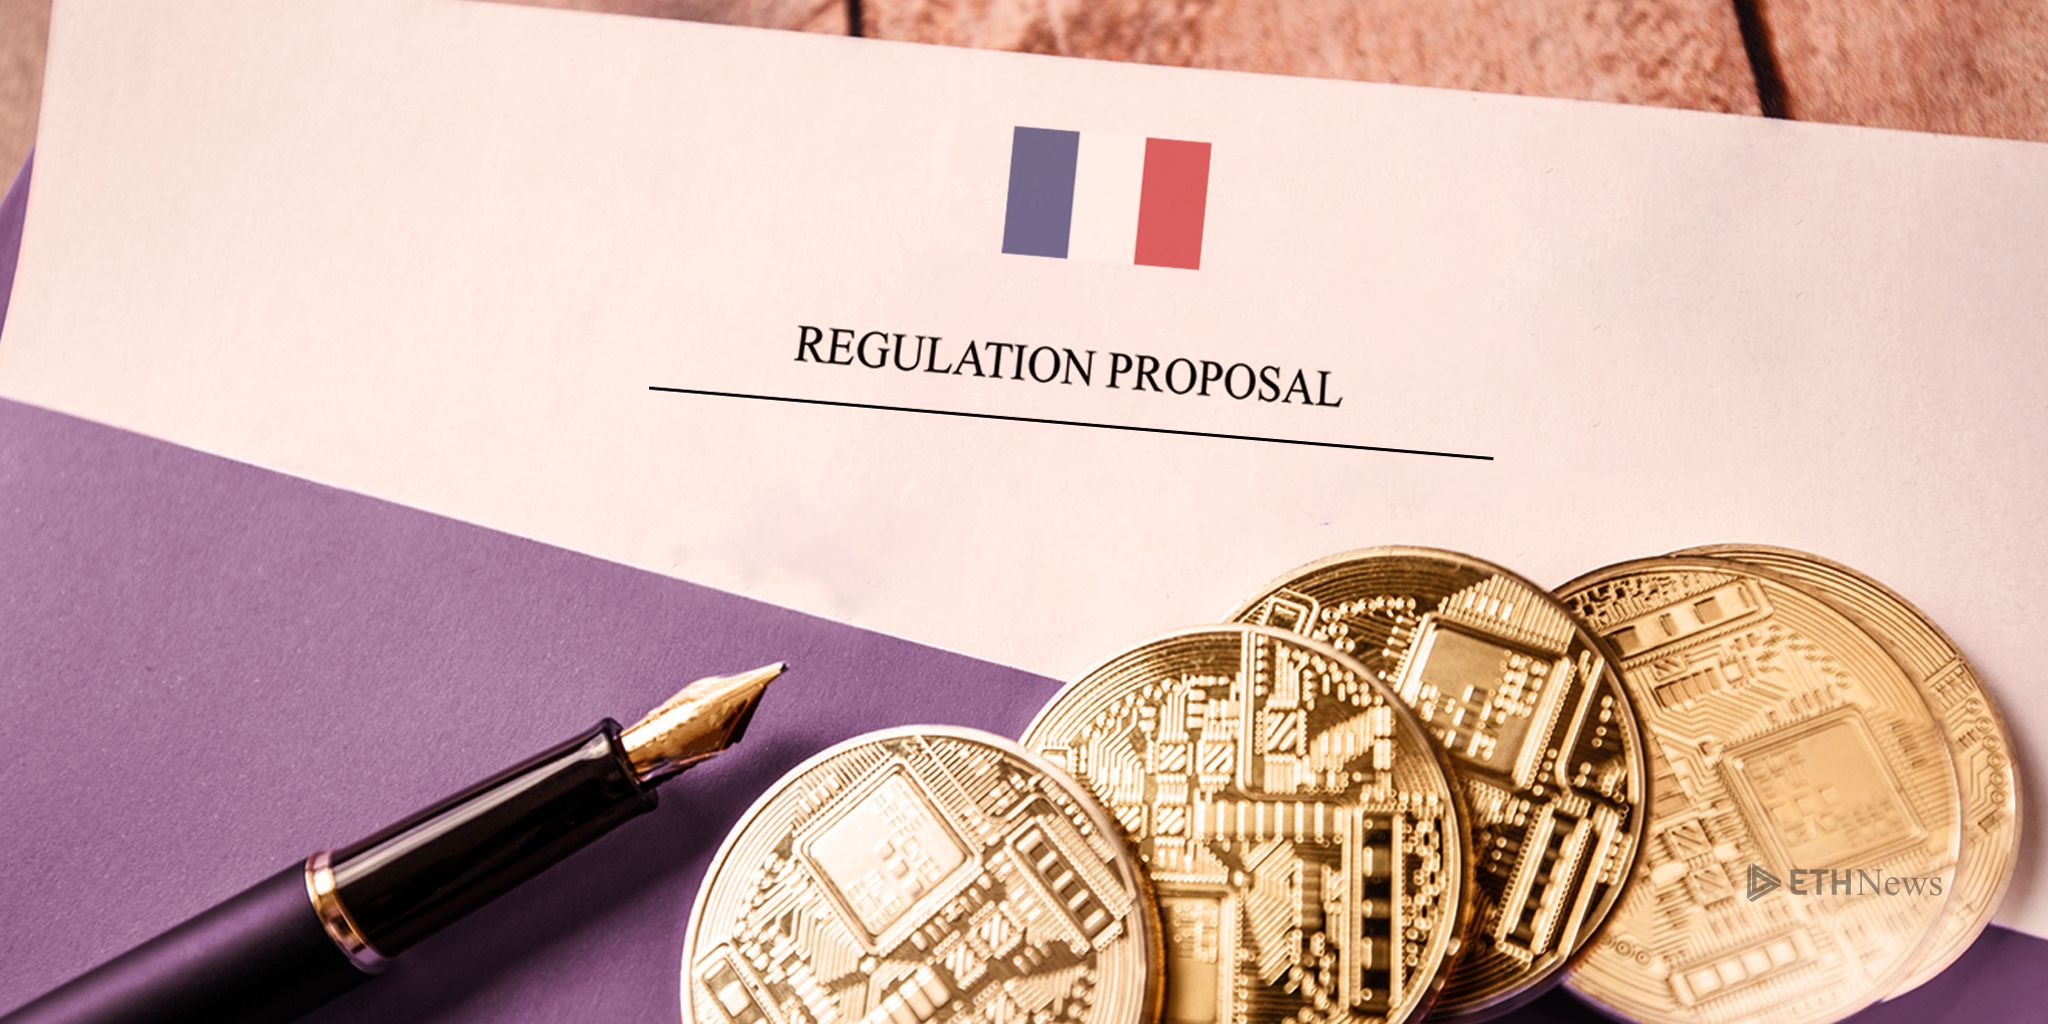 regulation influence the way France operates with crypto